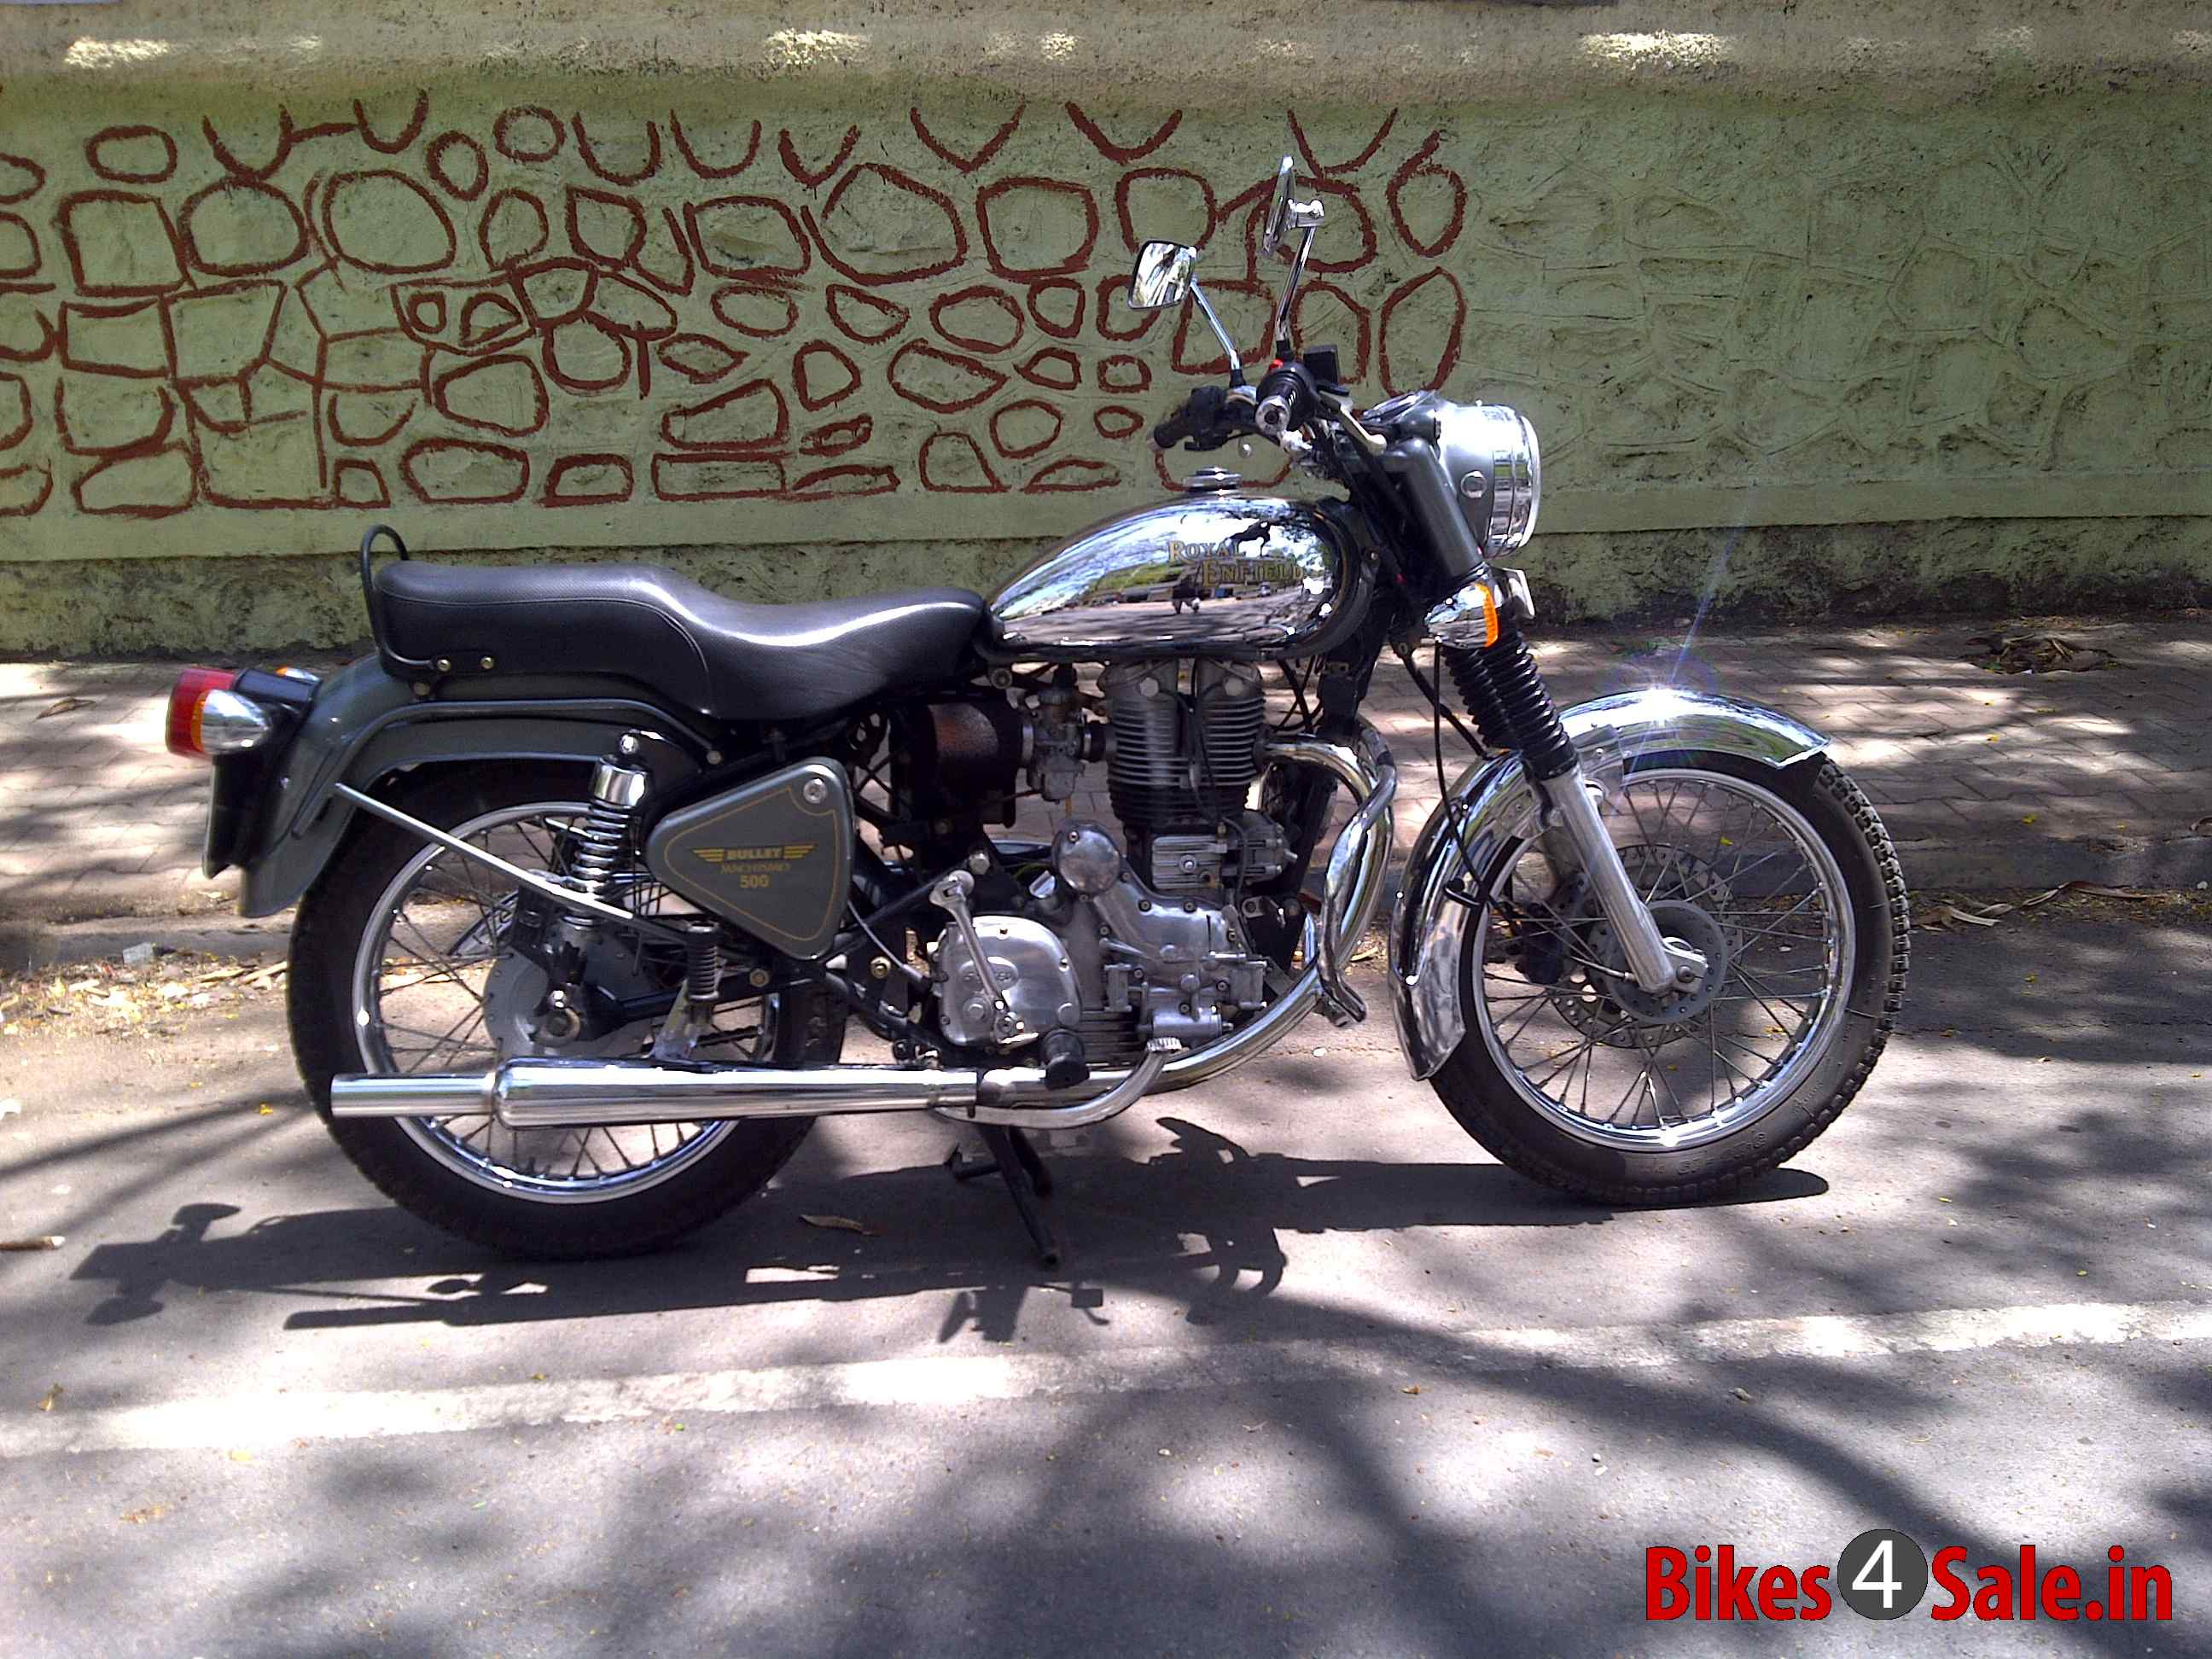 Enfield Bullet Machismo 2007 #1